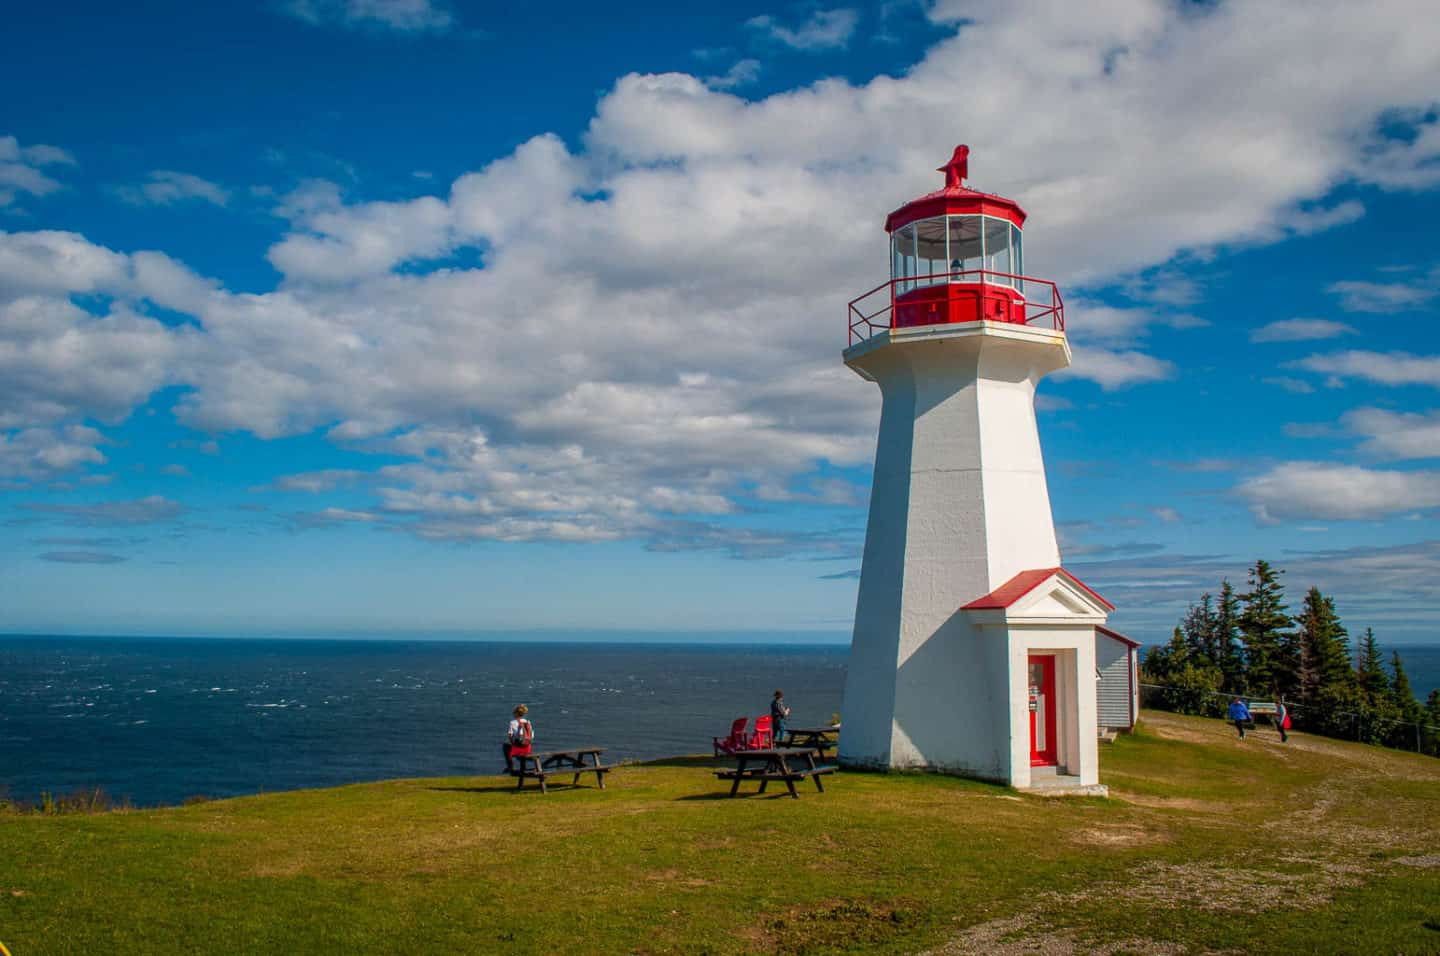 Forillon National Park is one of the best national parks in Canada